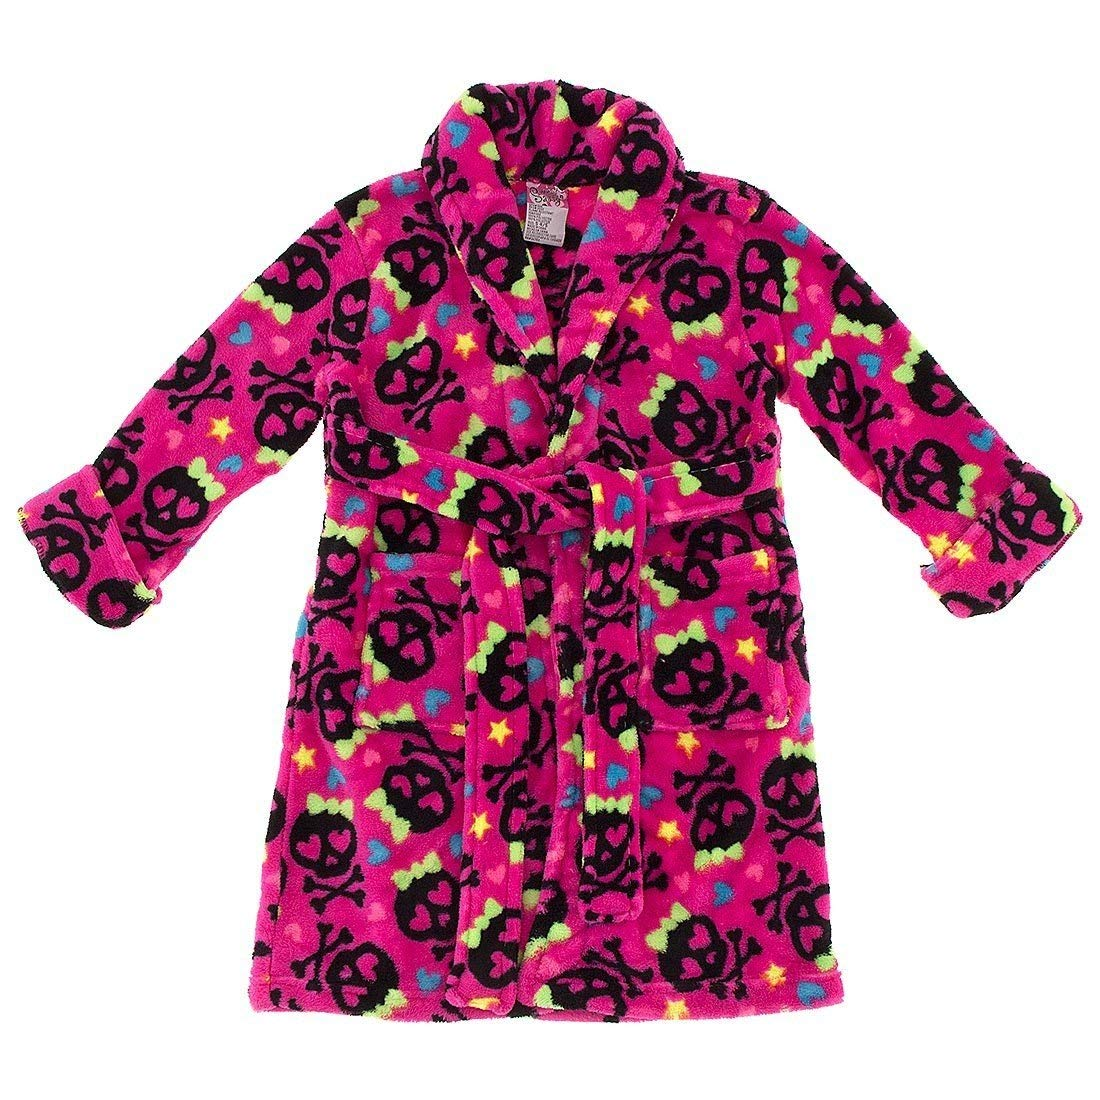 Sweet & Sassy Little Girls' Pink with Black Skulls Bathrobe